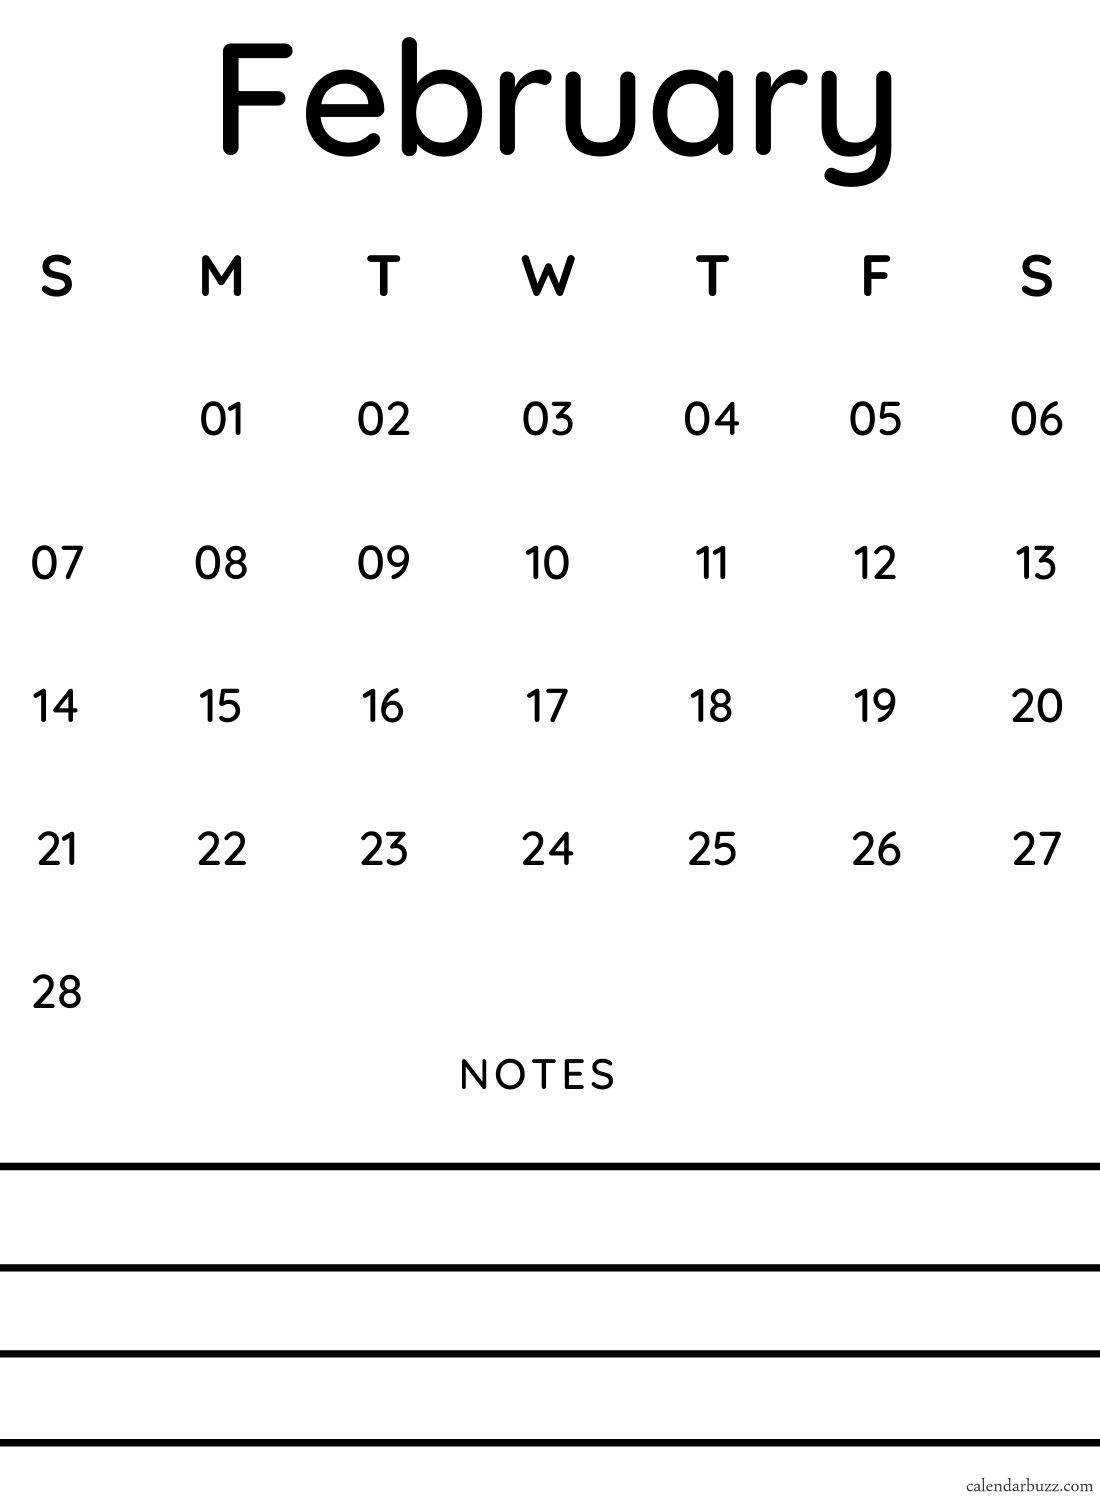 February 2021 Calendar With Notes Free Download | Calendarbuzz